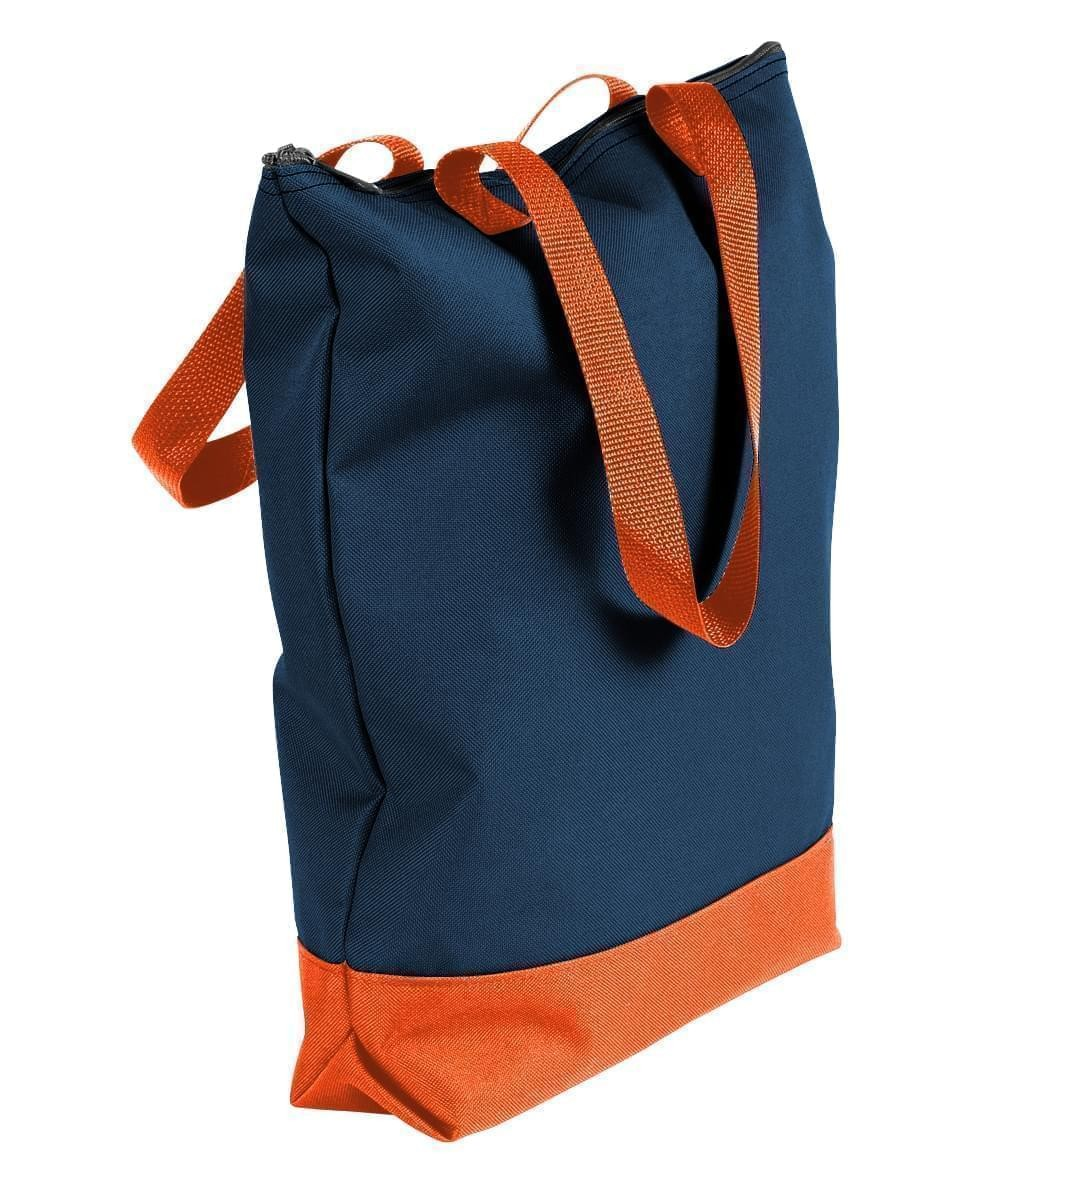 USA Made Canvas Portfolio Tote Bags, Navy-Orange, 1AAMX1UAC0